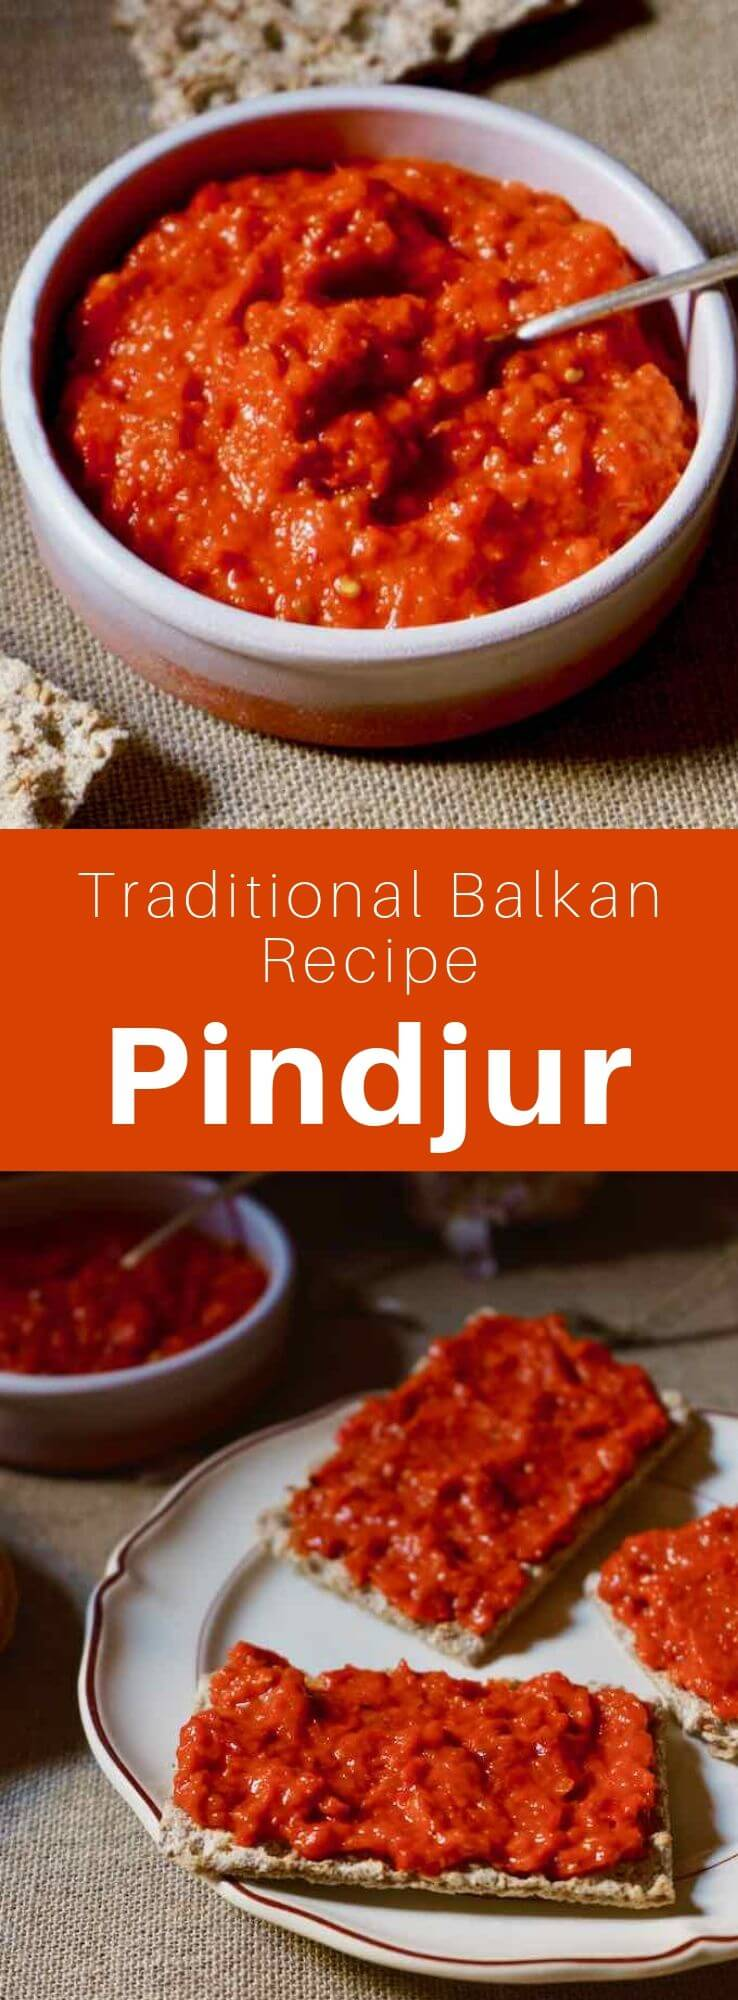 Pindjour or pindjur is a condiment or spread of vegetables from the center of the Balkans (Macedonia), close to the Lutenica and Ajvar, but made from eggplants. #MacedonianRecipe #MacedonianCuisine #BalkanCuisine #BalkanRecipe # WorldCuisine # 196flavors